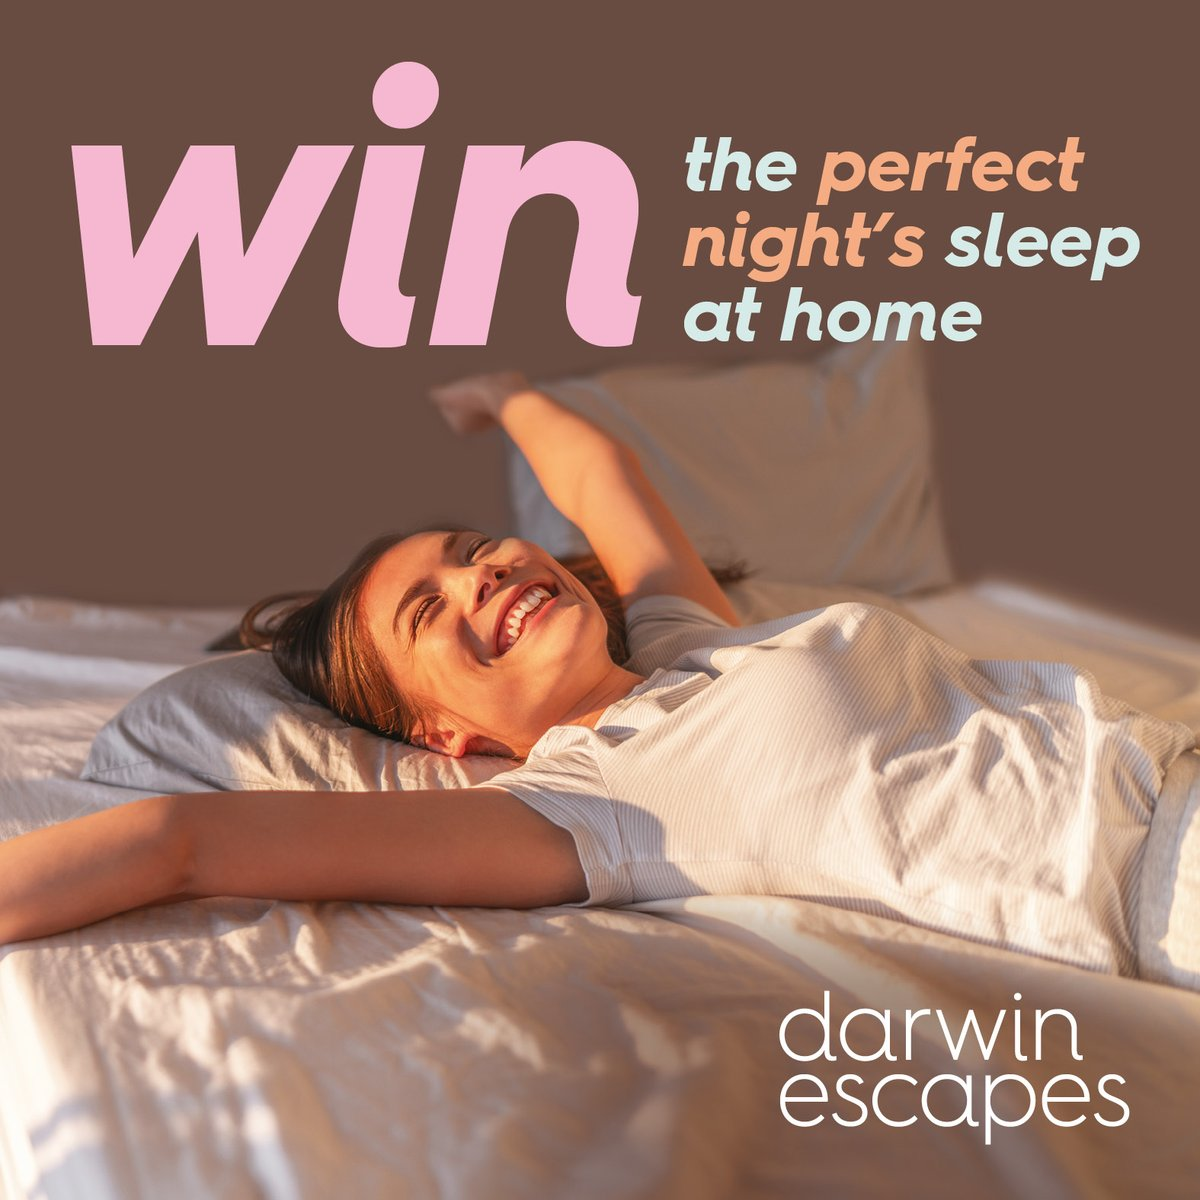 Head on over to our #Facebook page to enter our #competition to #win a #mattress (no sharing or tagging required, just like and comment to enter!) #TuesdayThoughts  https://t.co/848hrnWS9z https://t.co/j5XKwNtn2y